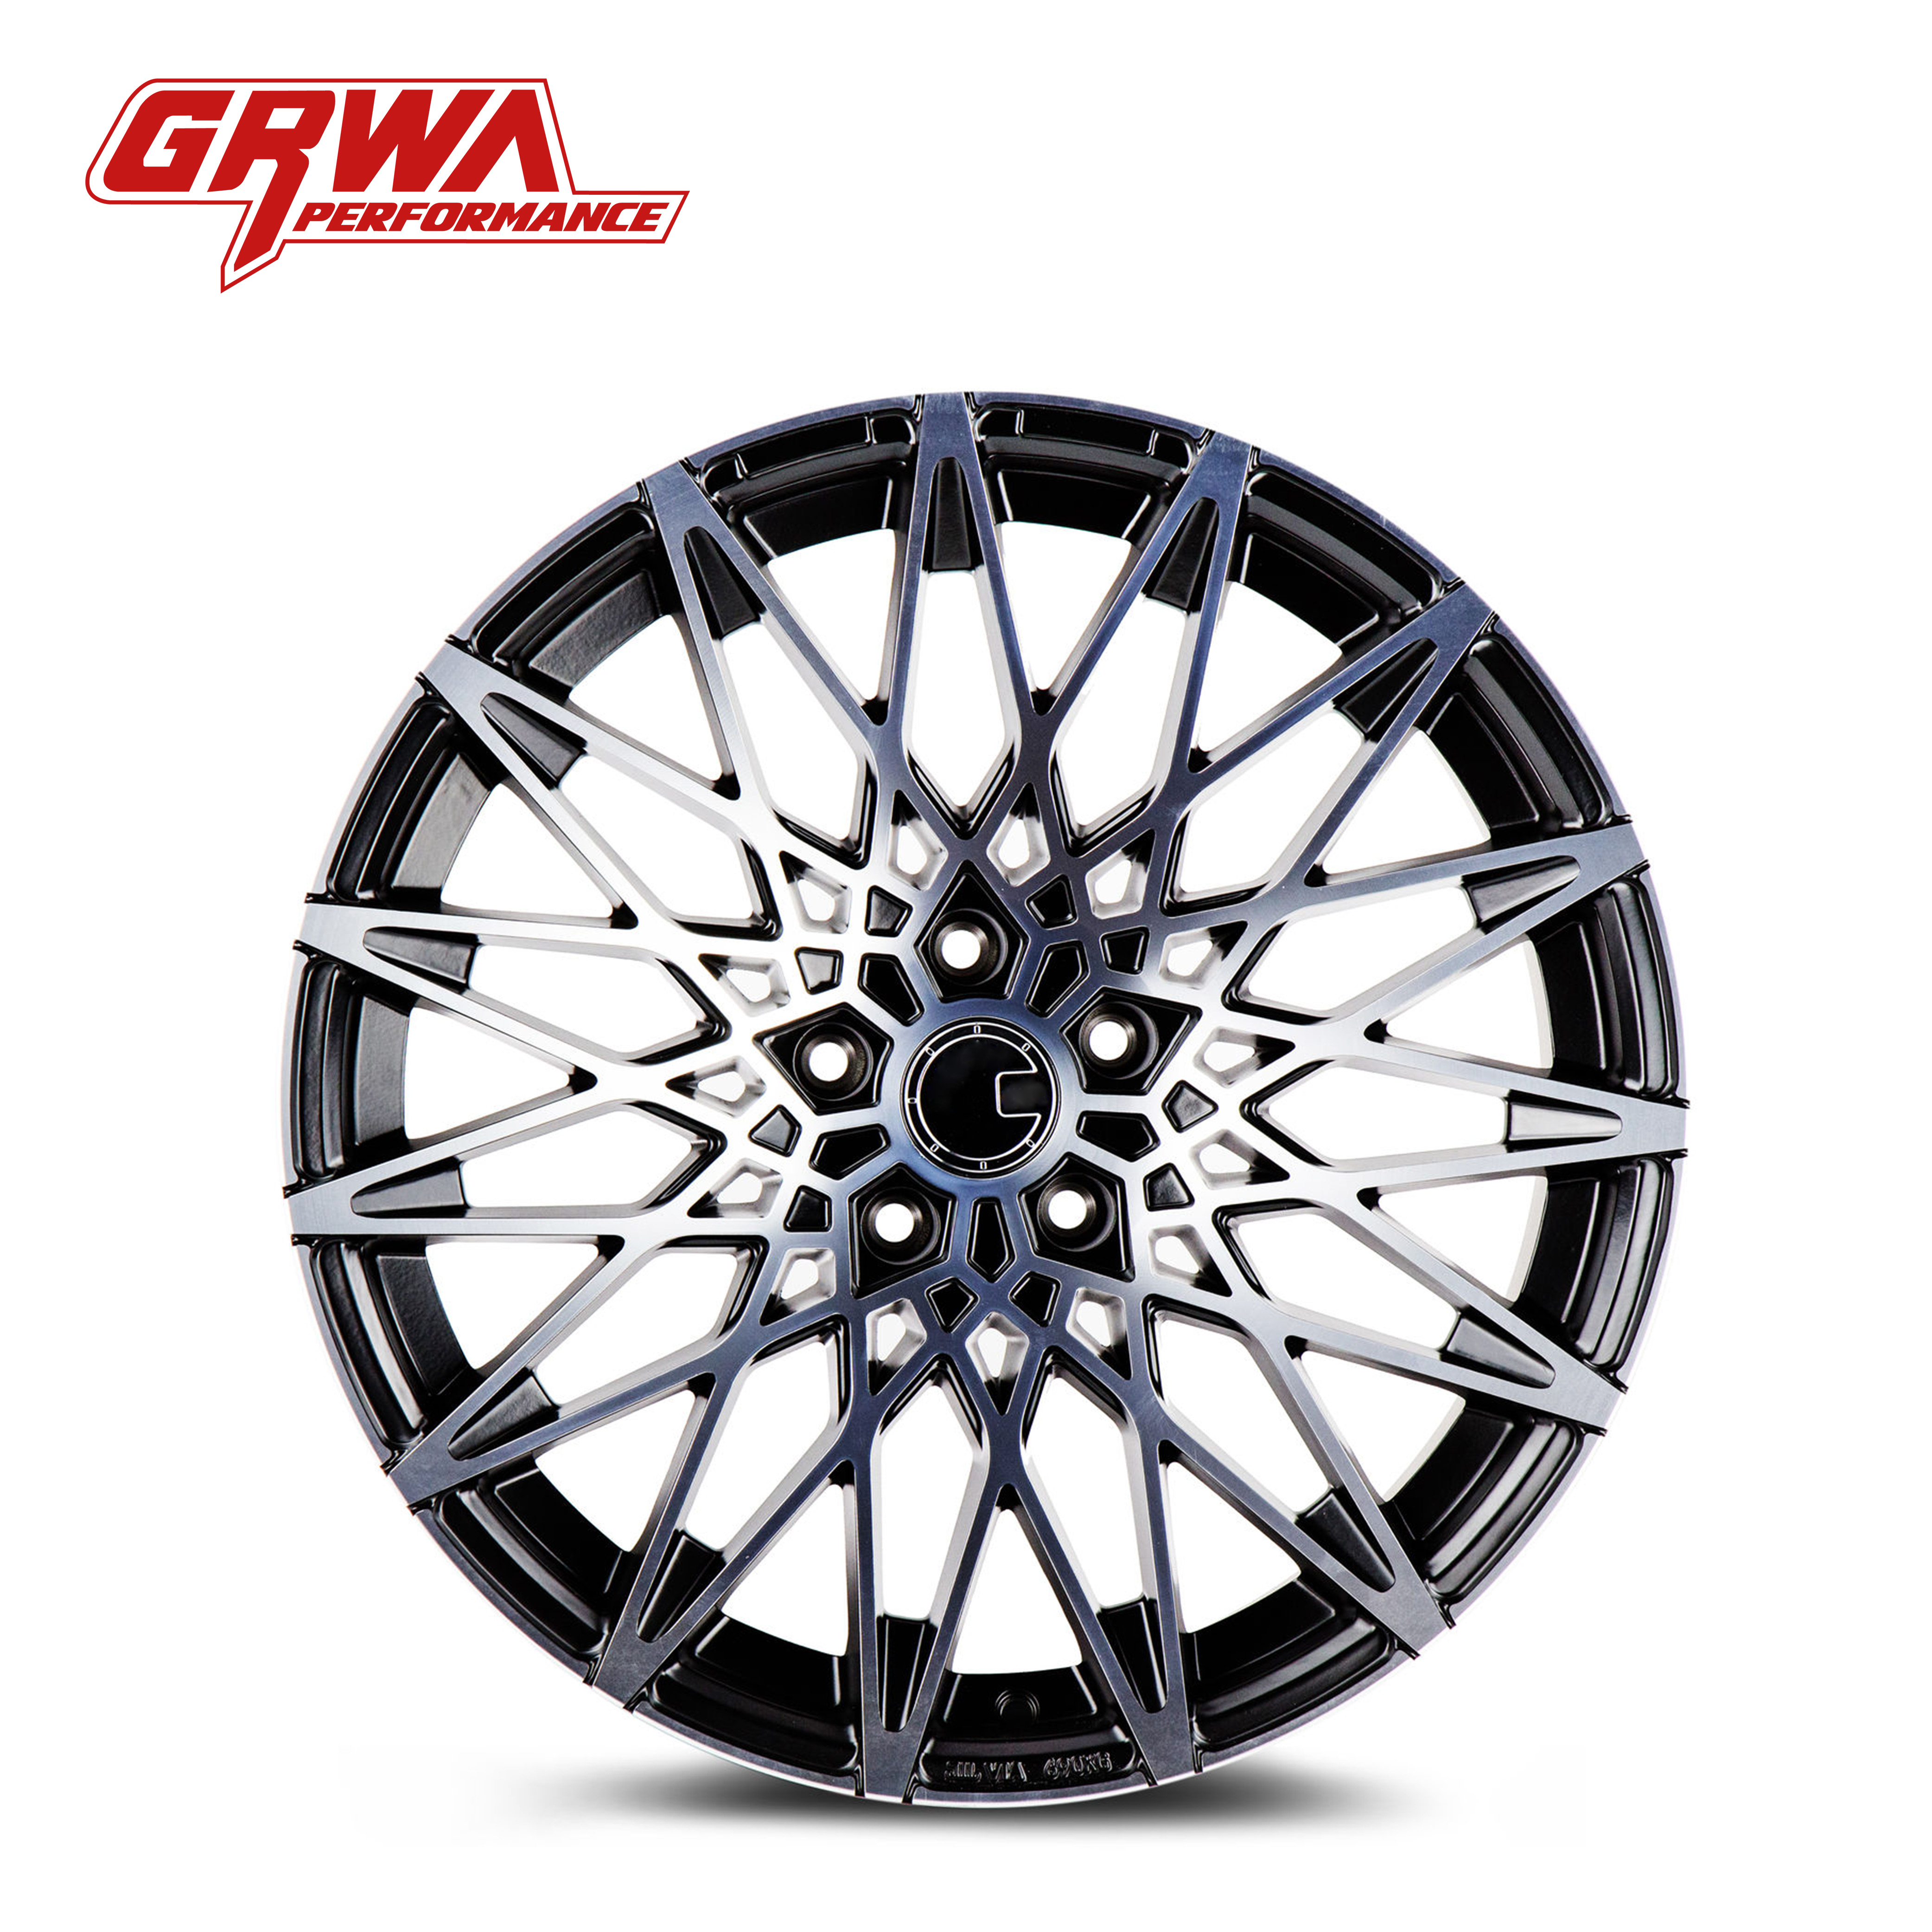 China High Quality Grwa Automotive Parts Customized Aluminum Alloy <strong>Wheels</strong>